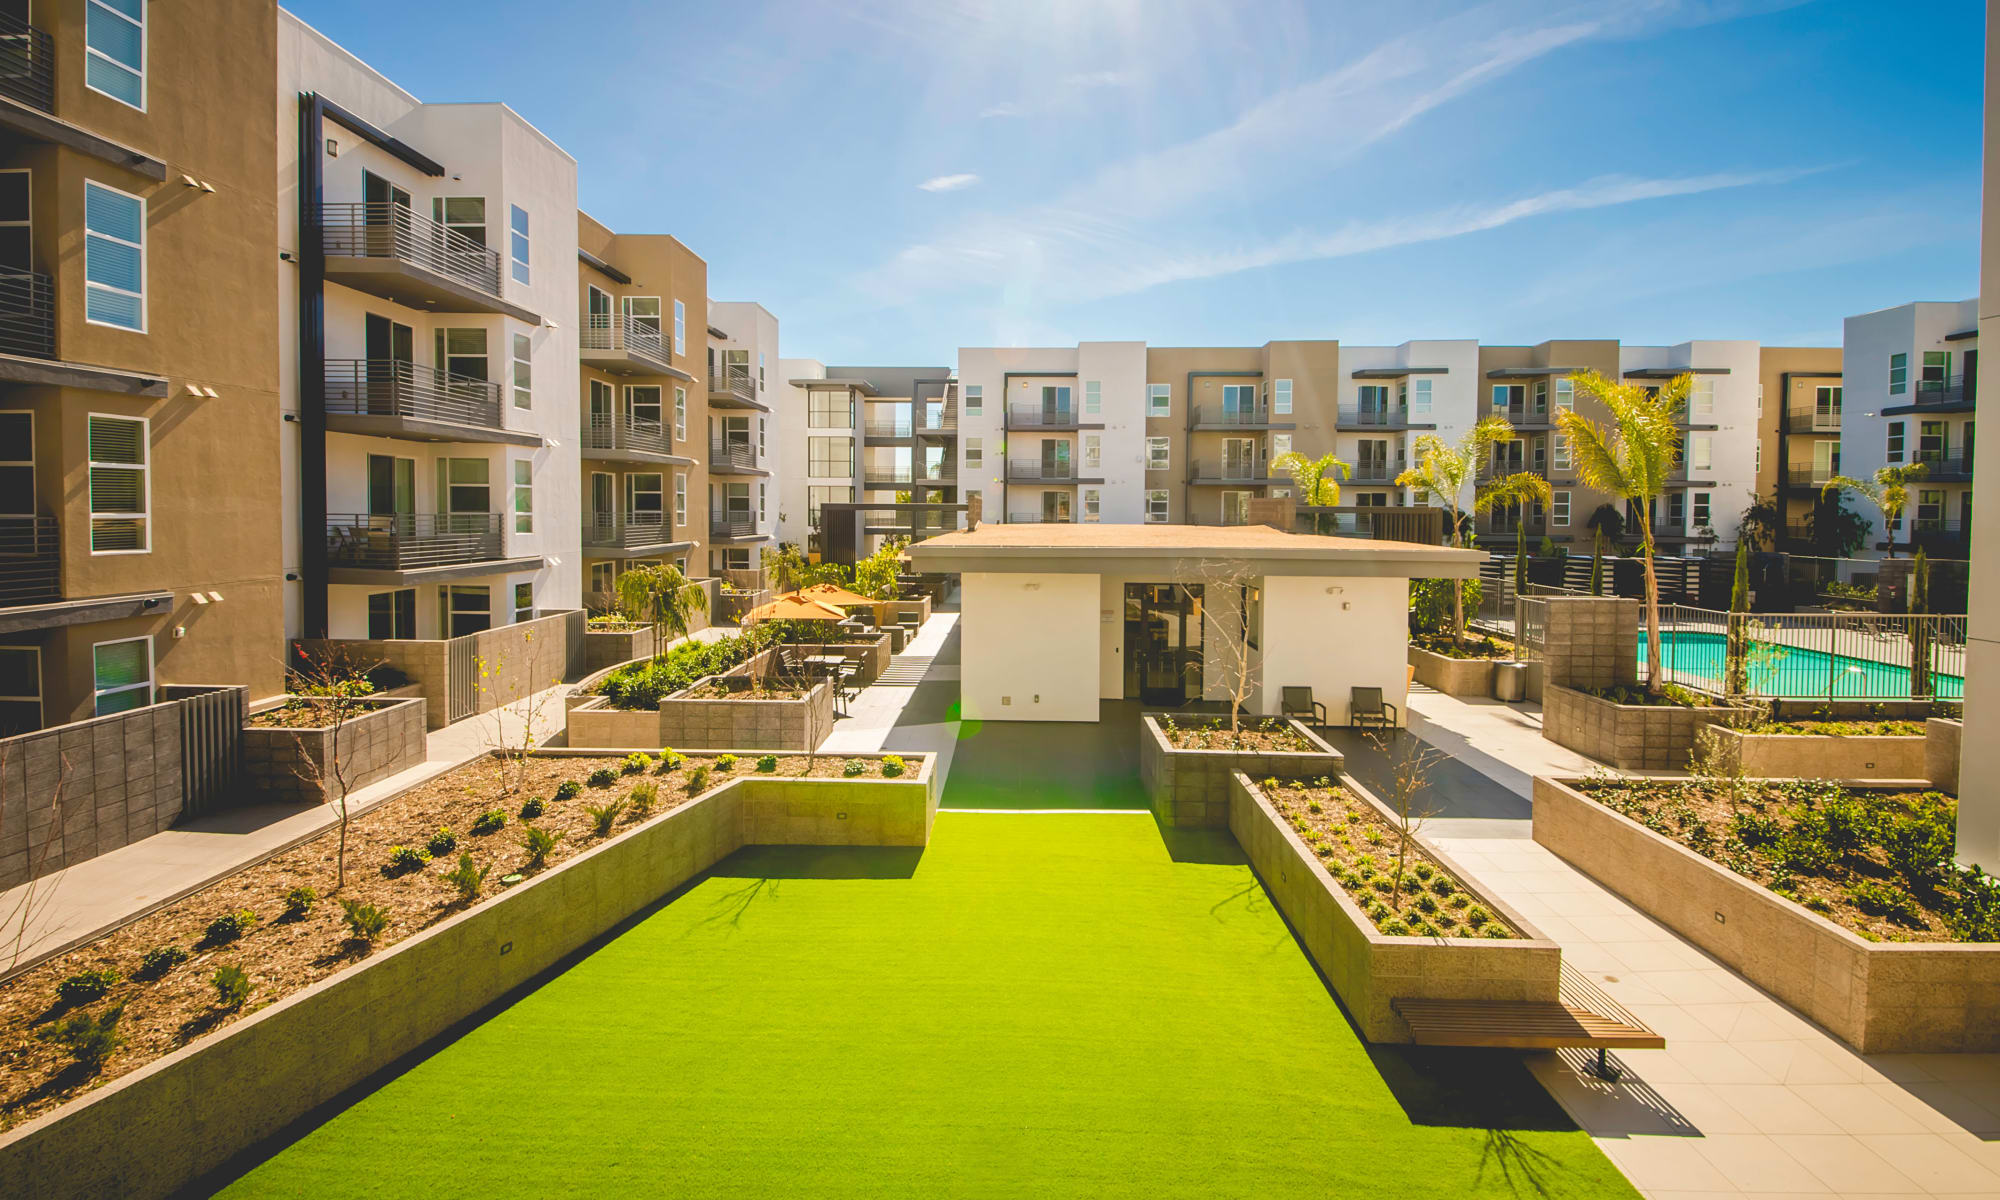 Live well at IMT Sherman Circle apartments in Van Nuys, CA